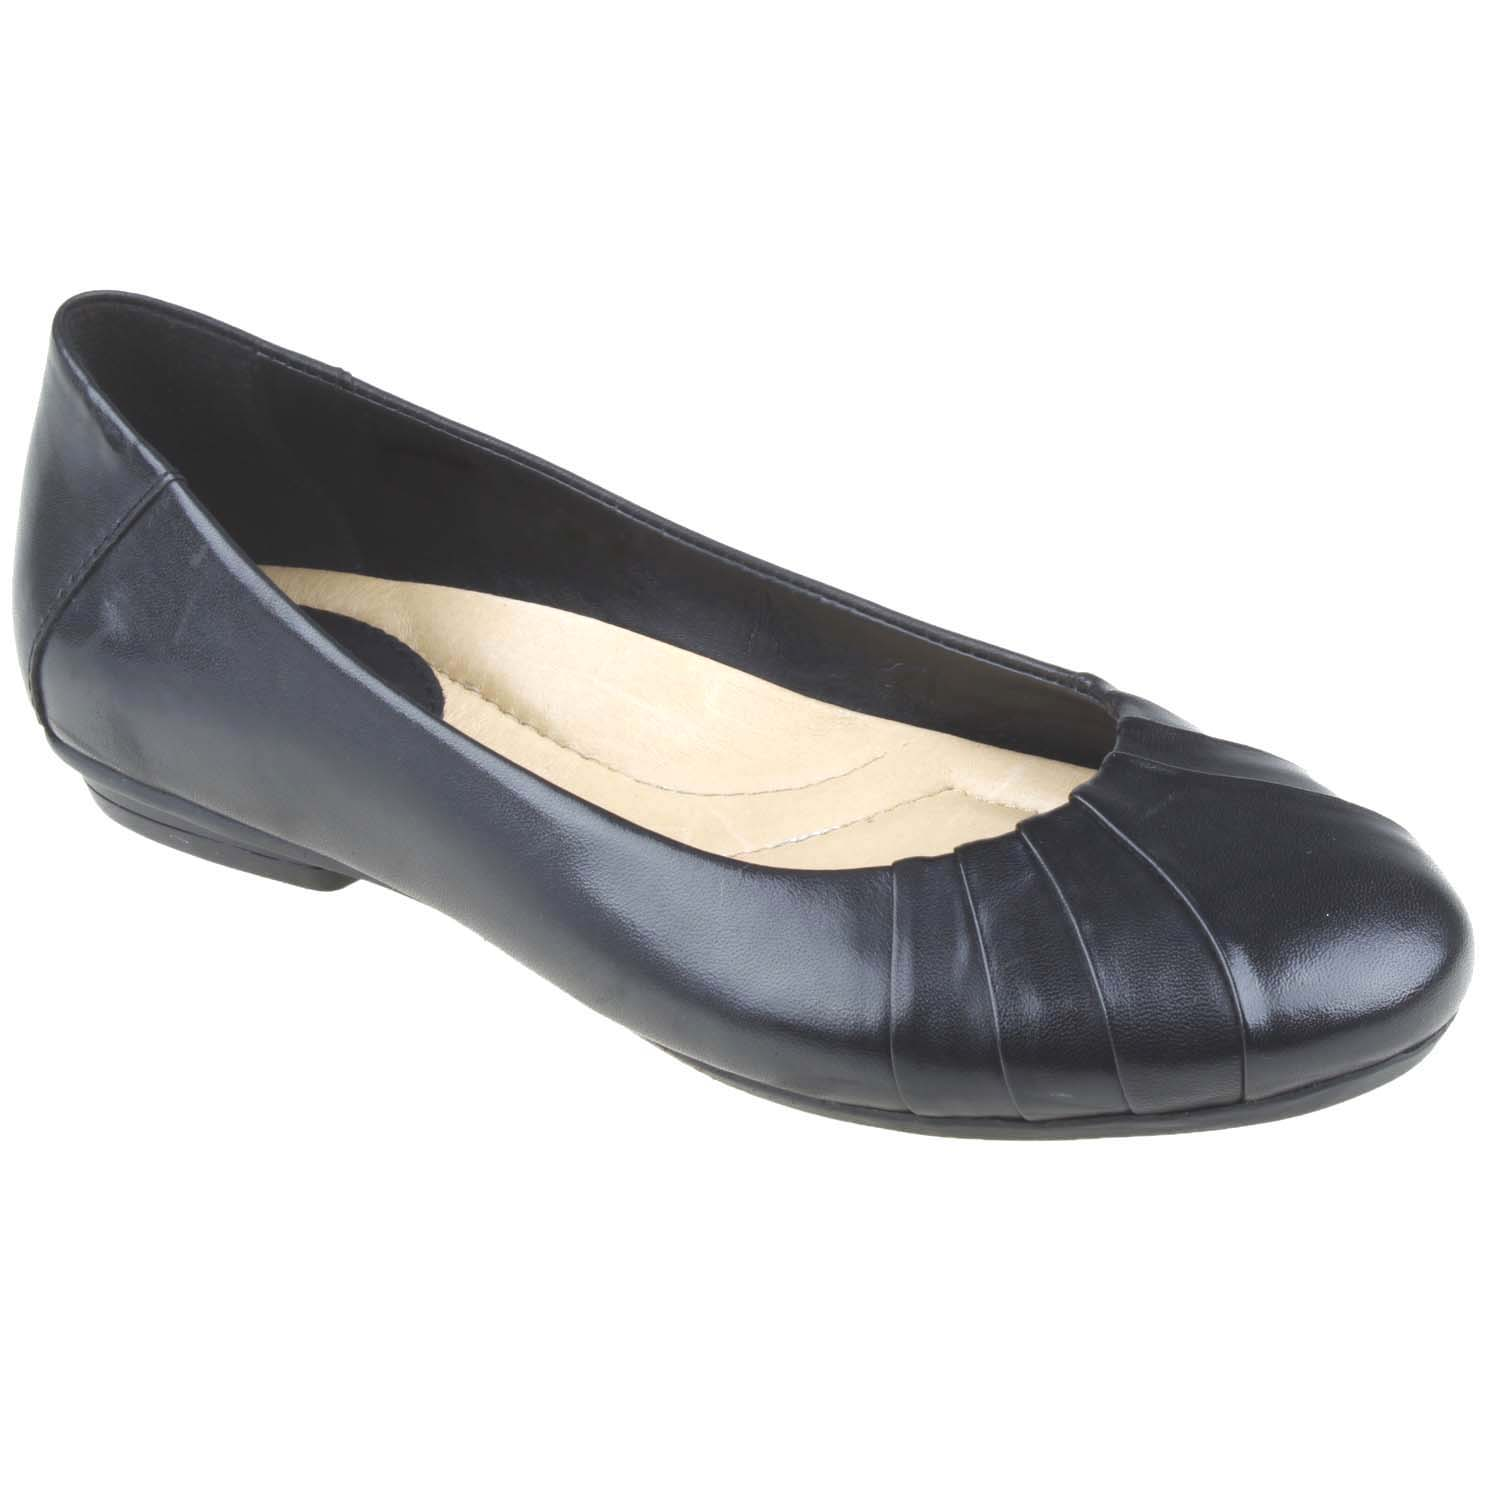 Original Womens Dress Shoes With Arch Support